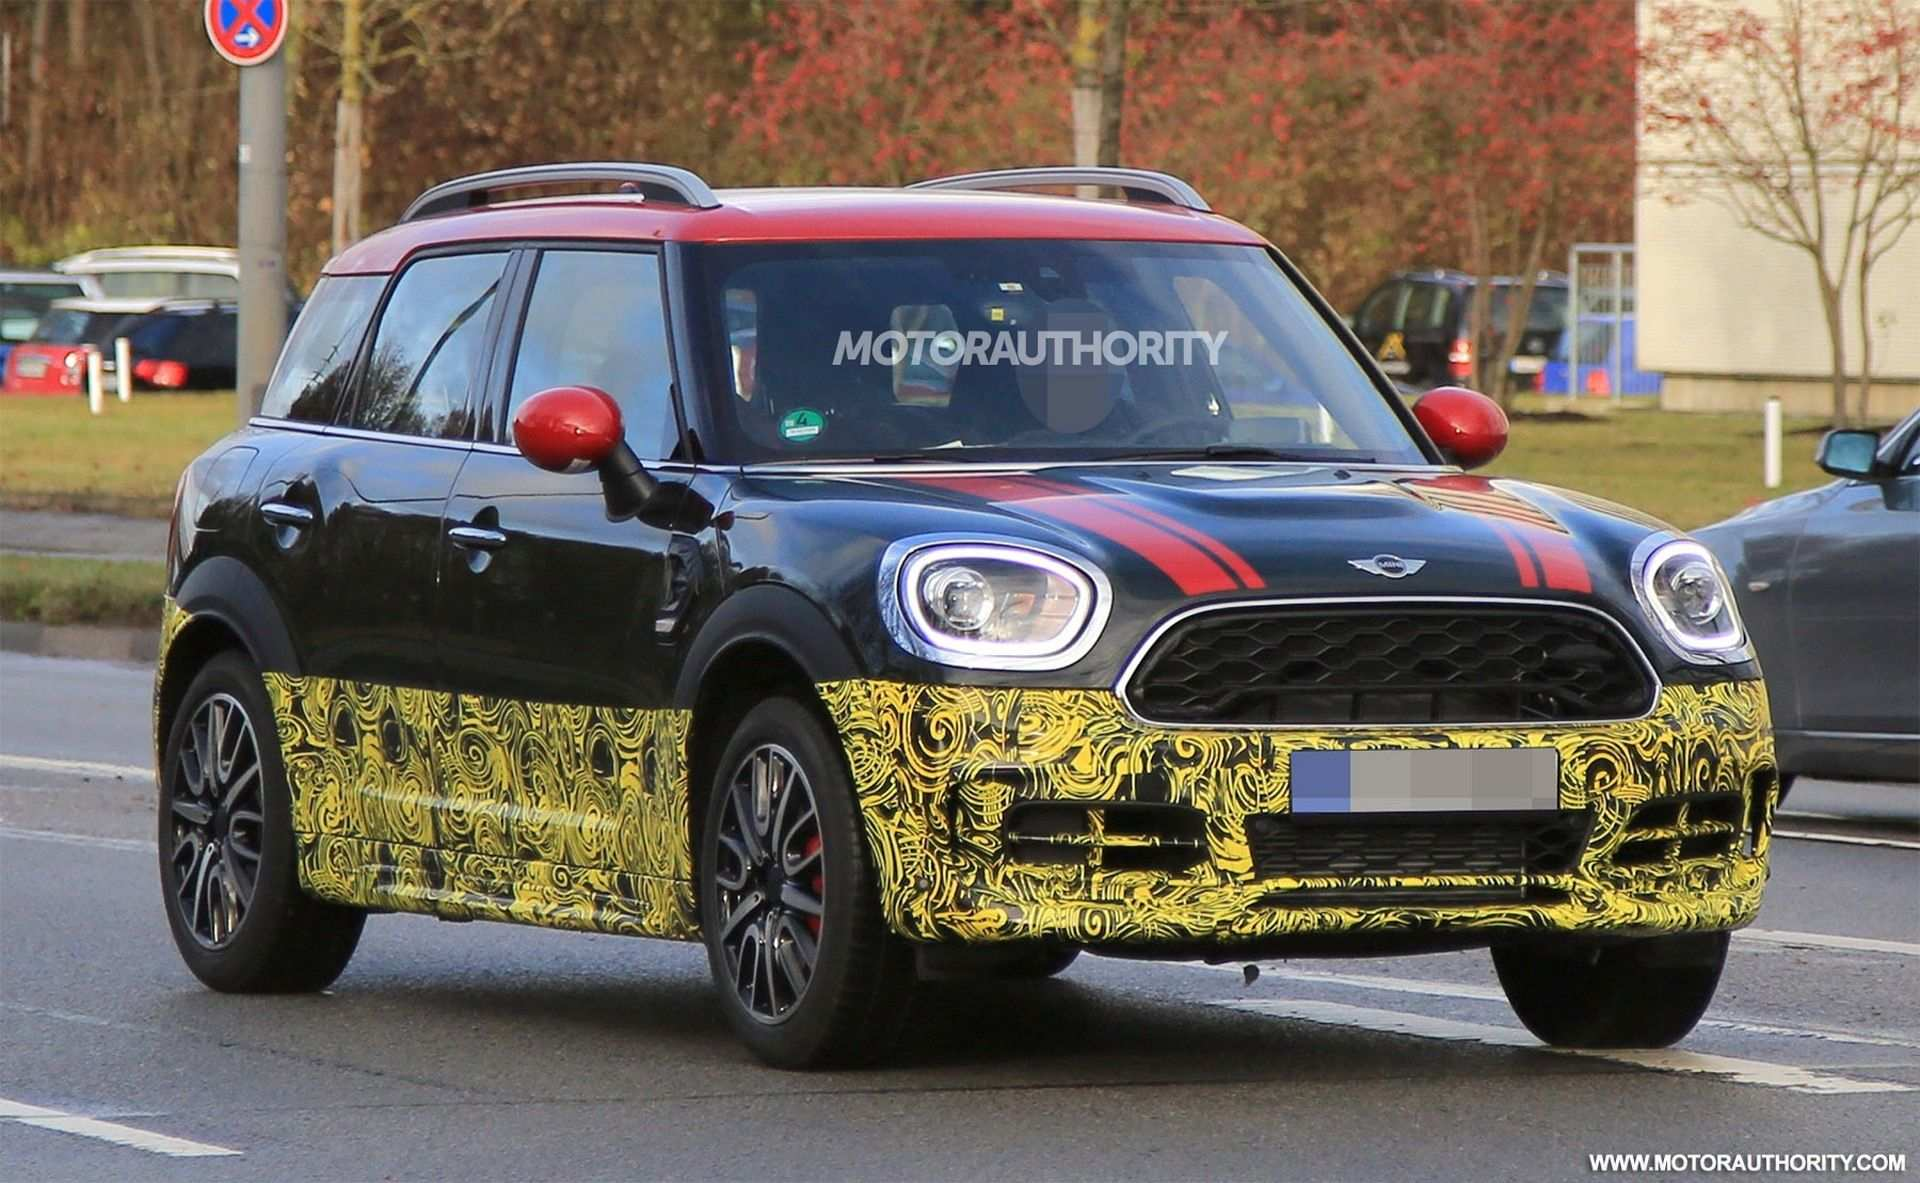 61 All New Spy Shots 2020 Mini Countryman Picture for Spy Shots 2020 Mini Countryman